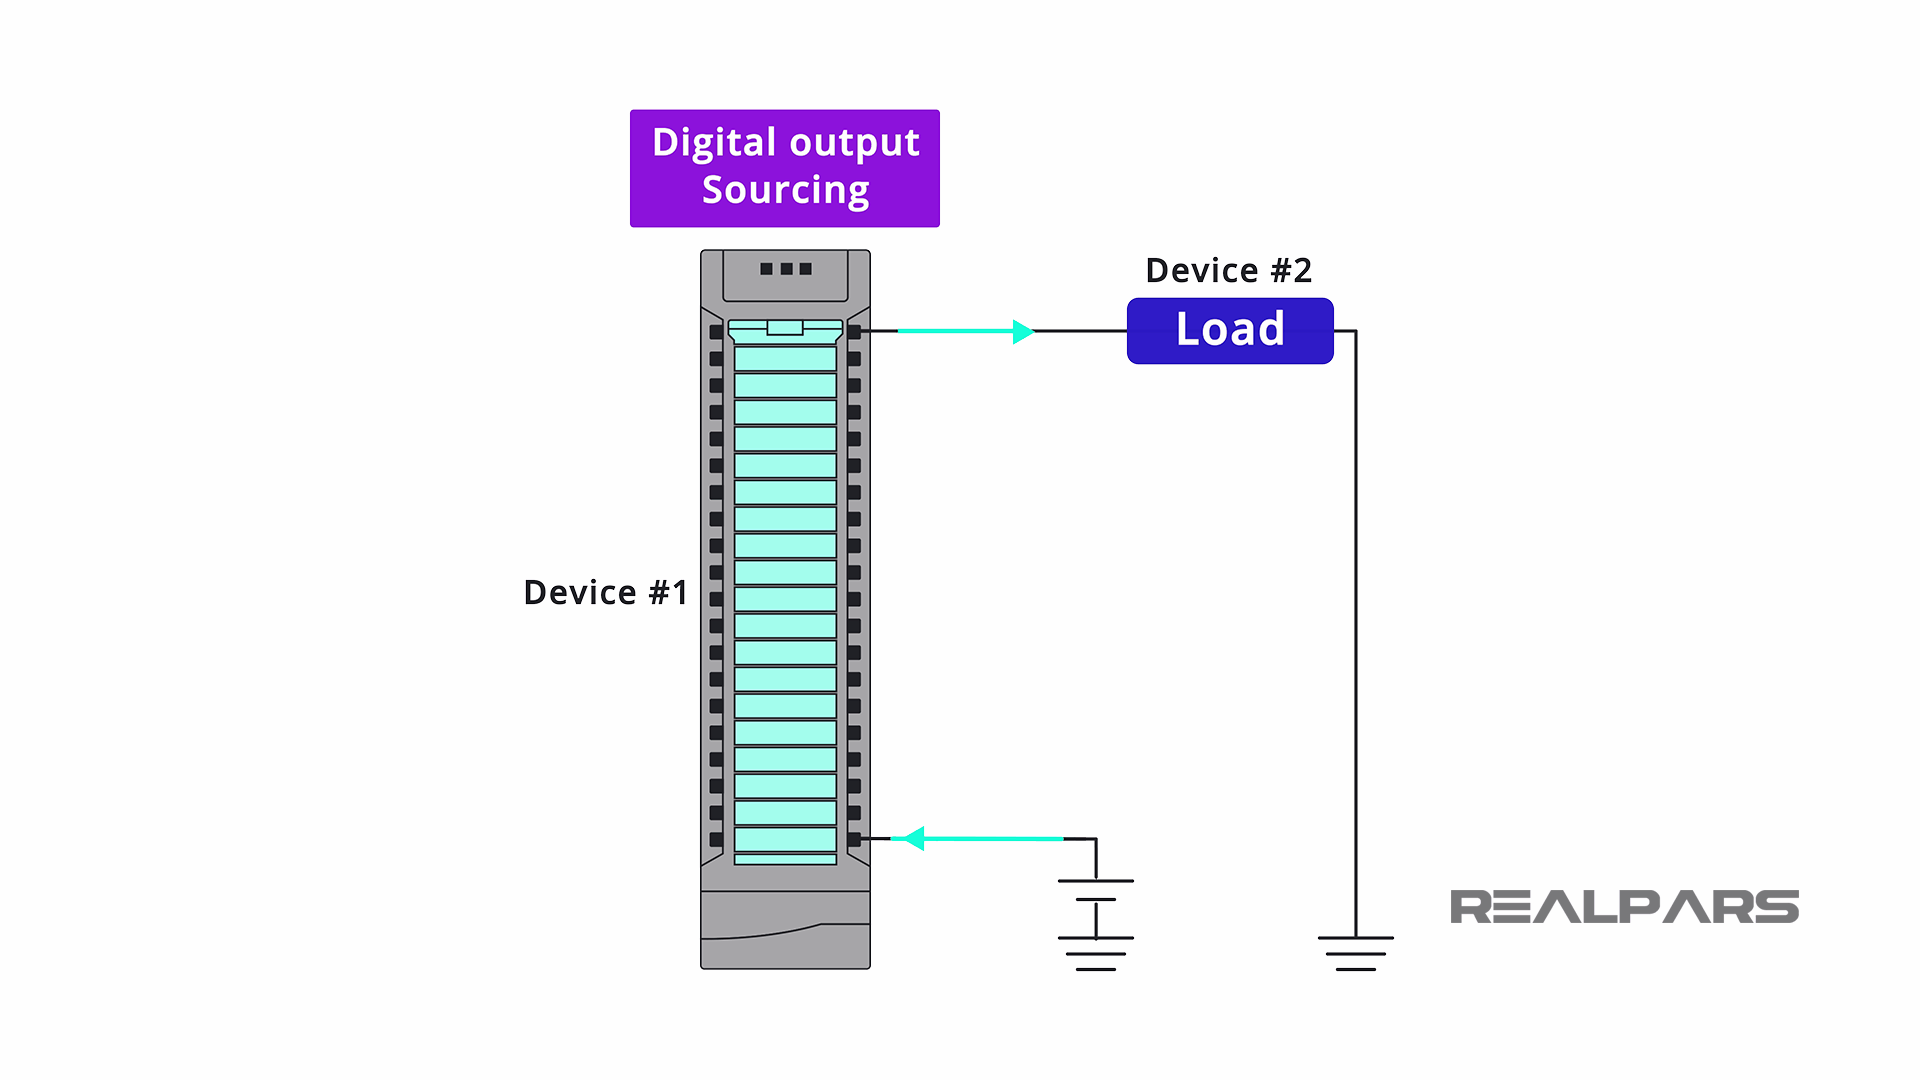 Sourcing Output Modules